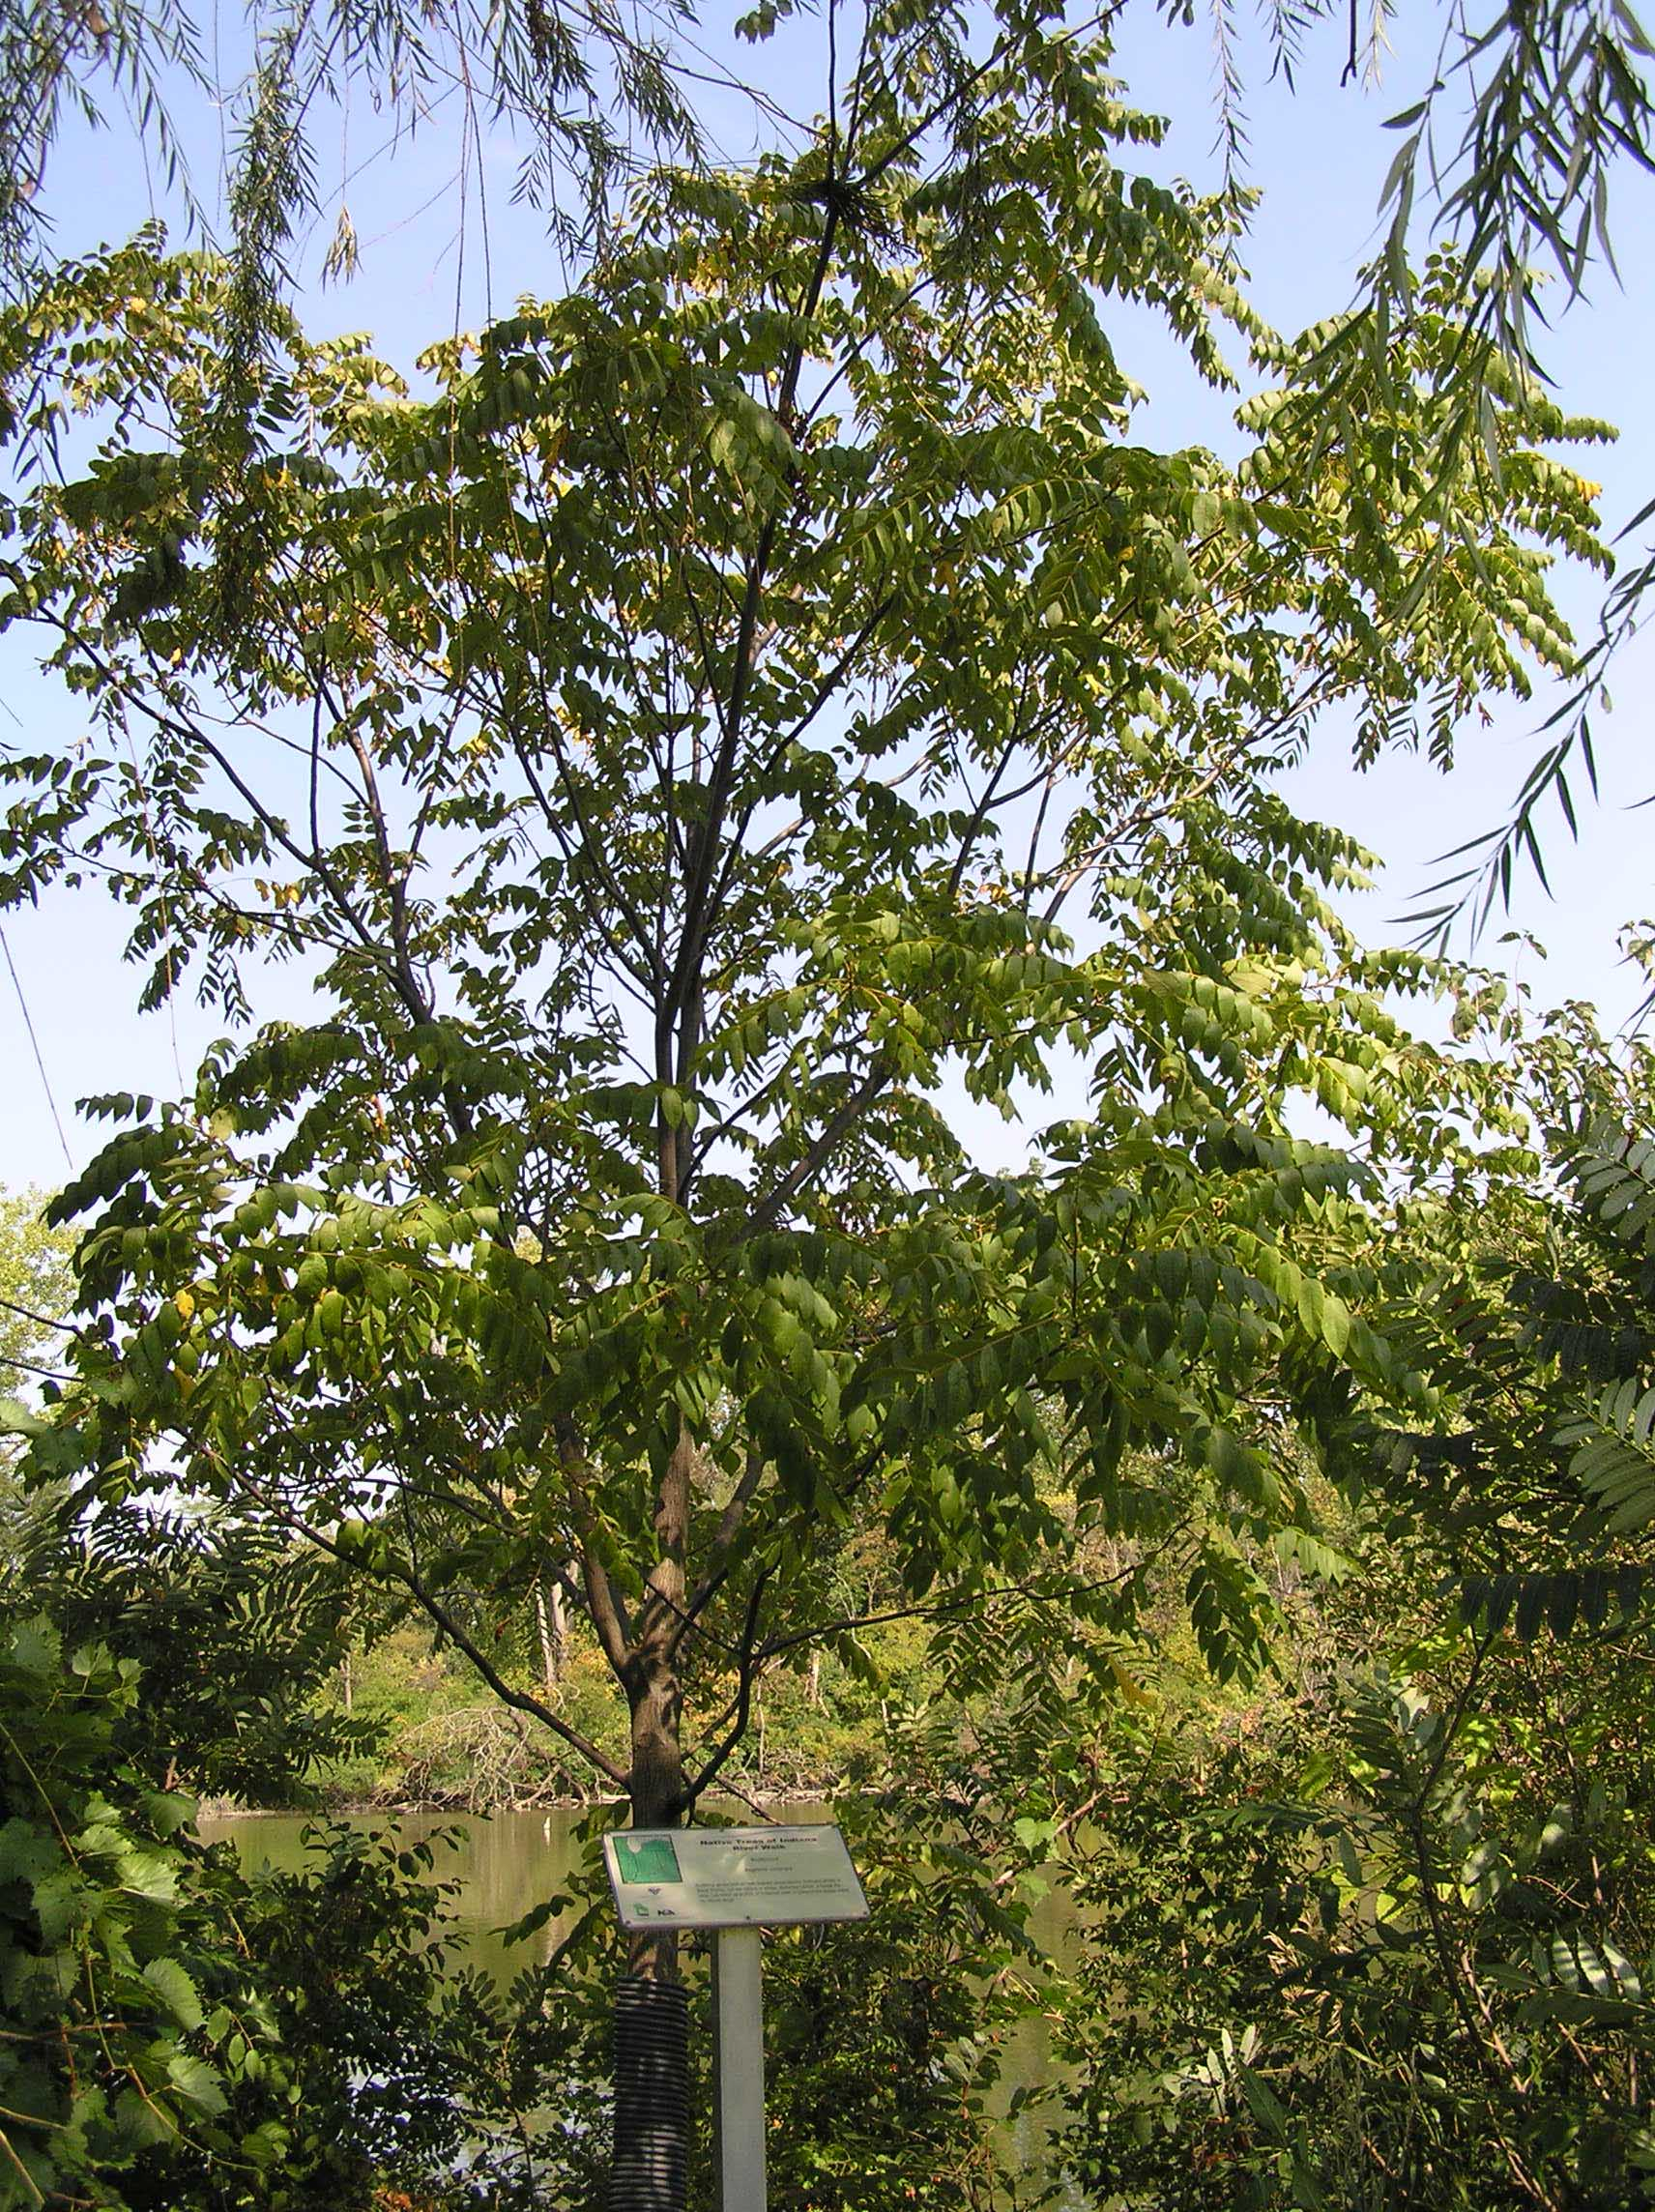 Butternut - Native Trees of Indiana - Purdue Fort Wayne